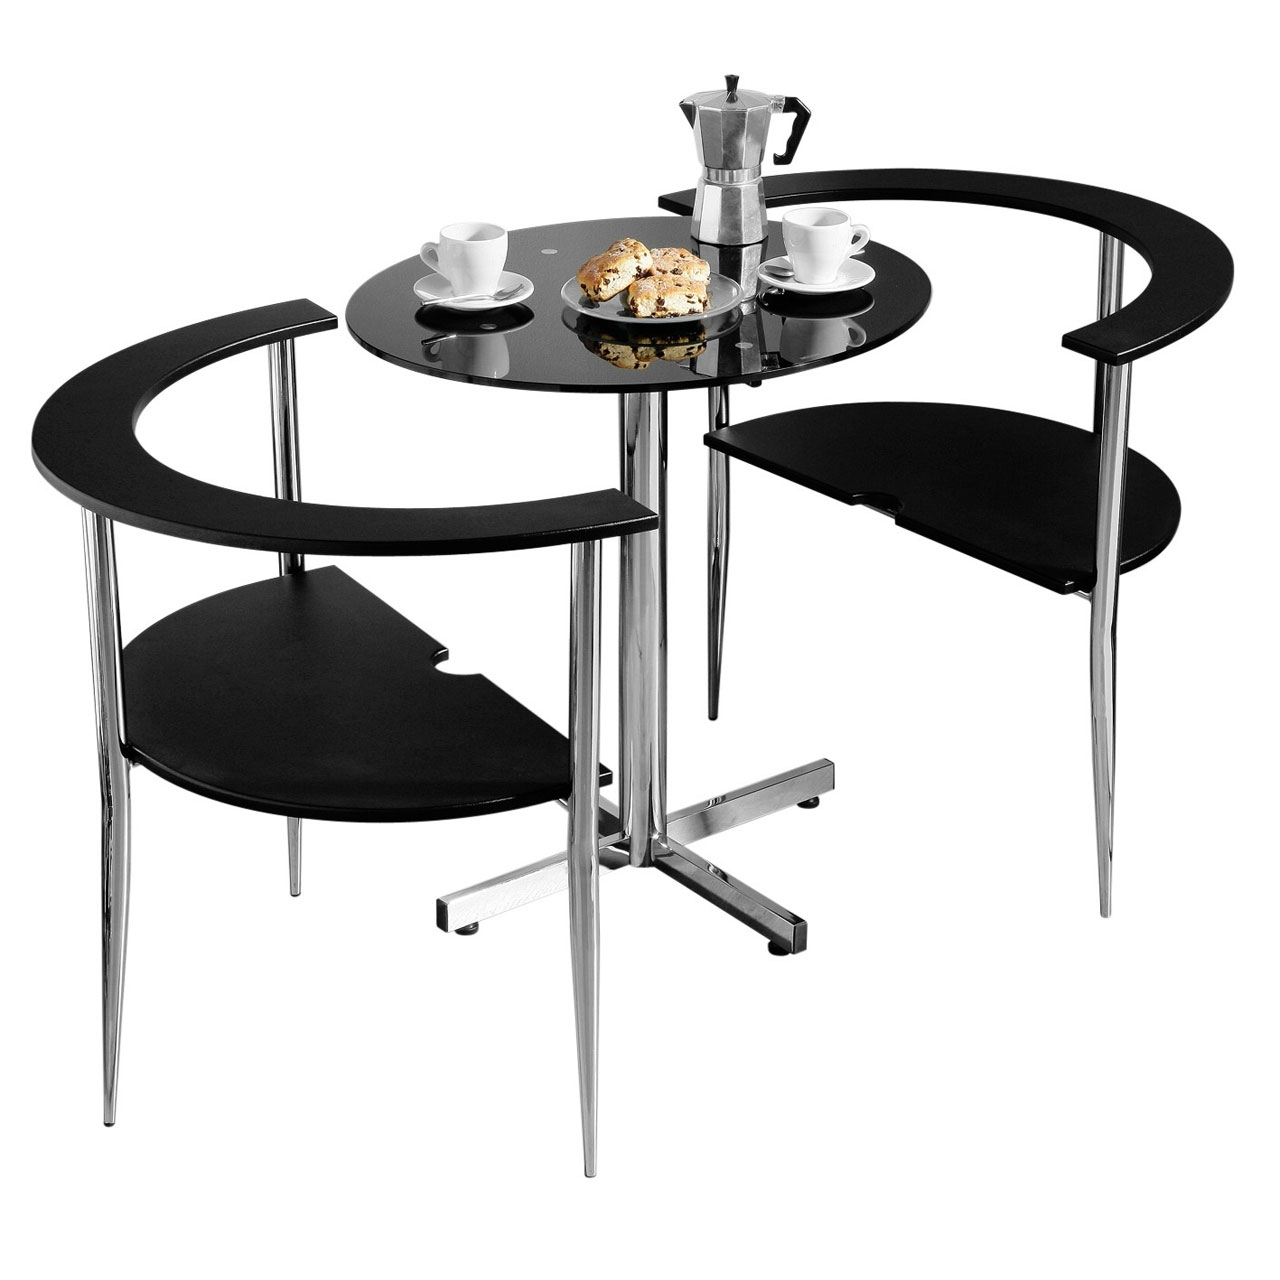 3Pc Round Love Dining Set Black Tempered Glass Table Top 2 Chairs with regard to Most Popular Dining Tables With 2 Seater